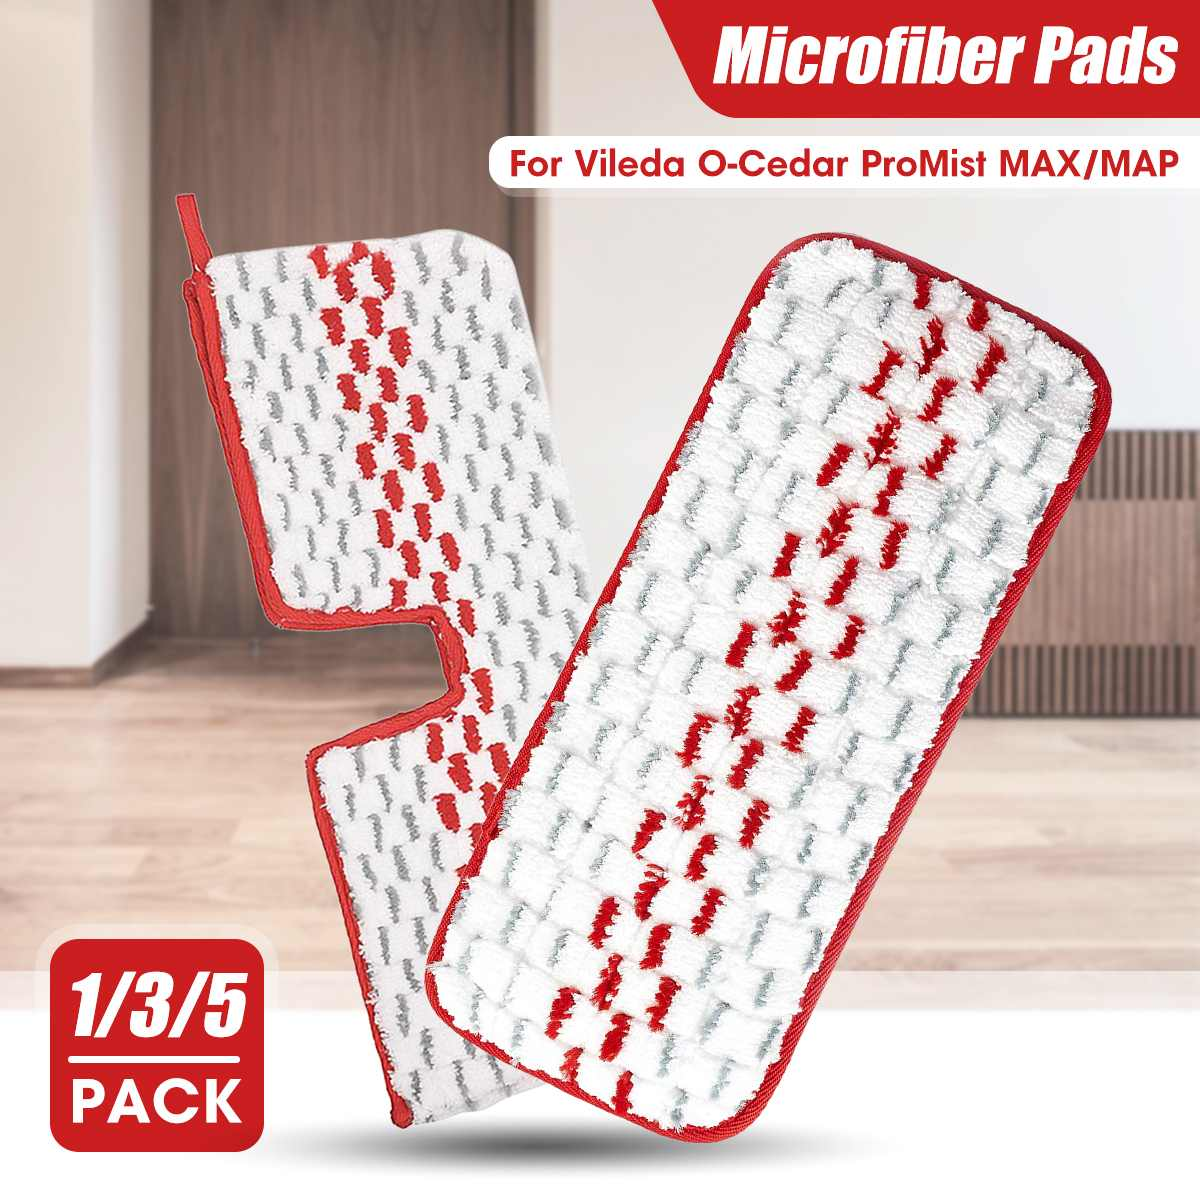 5pcs Floor Mop Reusable Microfiber Pads Wet Dry Cleaning Tools Replacement Paste Cloth Cover for Vileda O-Cedar ProMist MAX/MAP